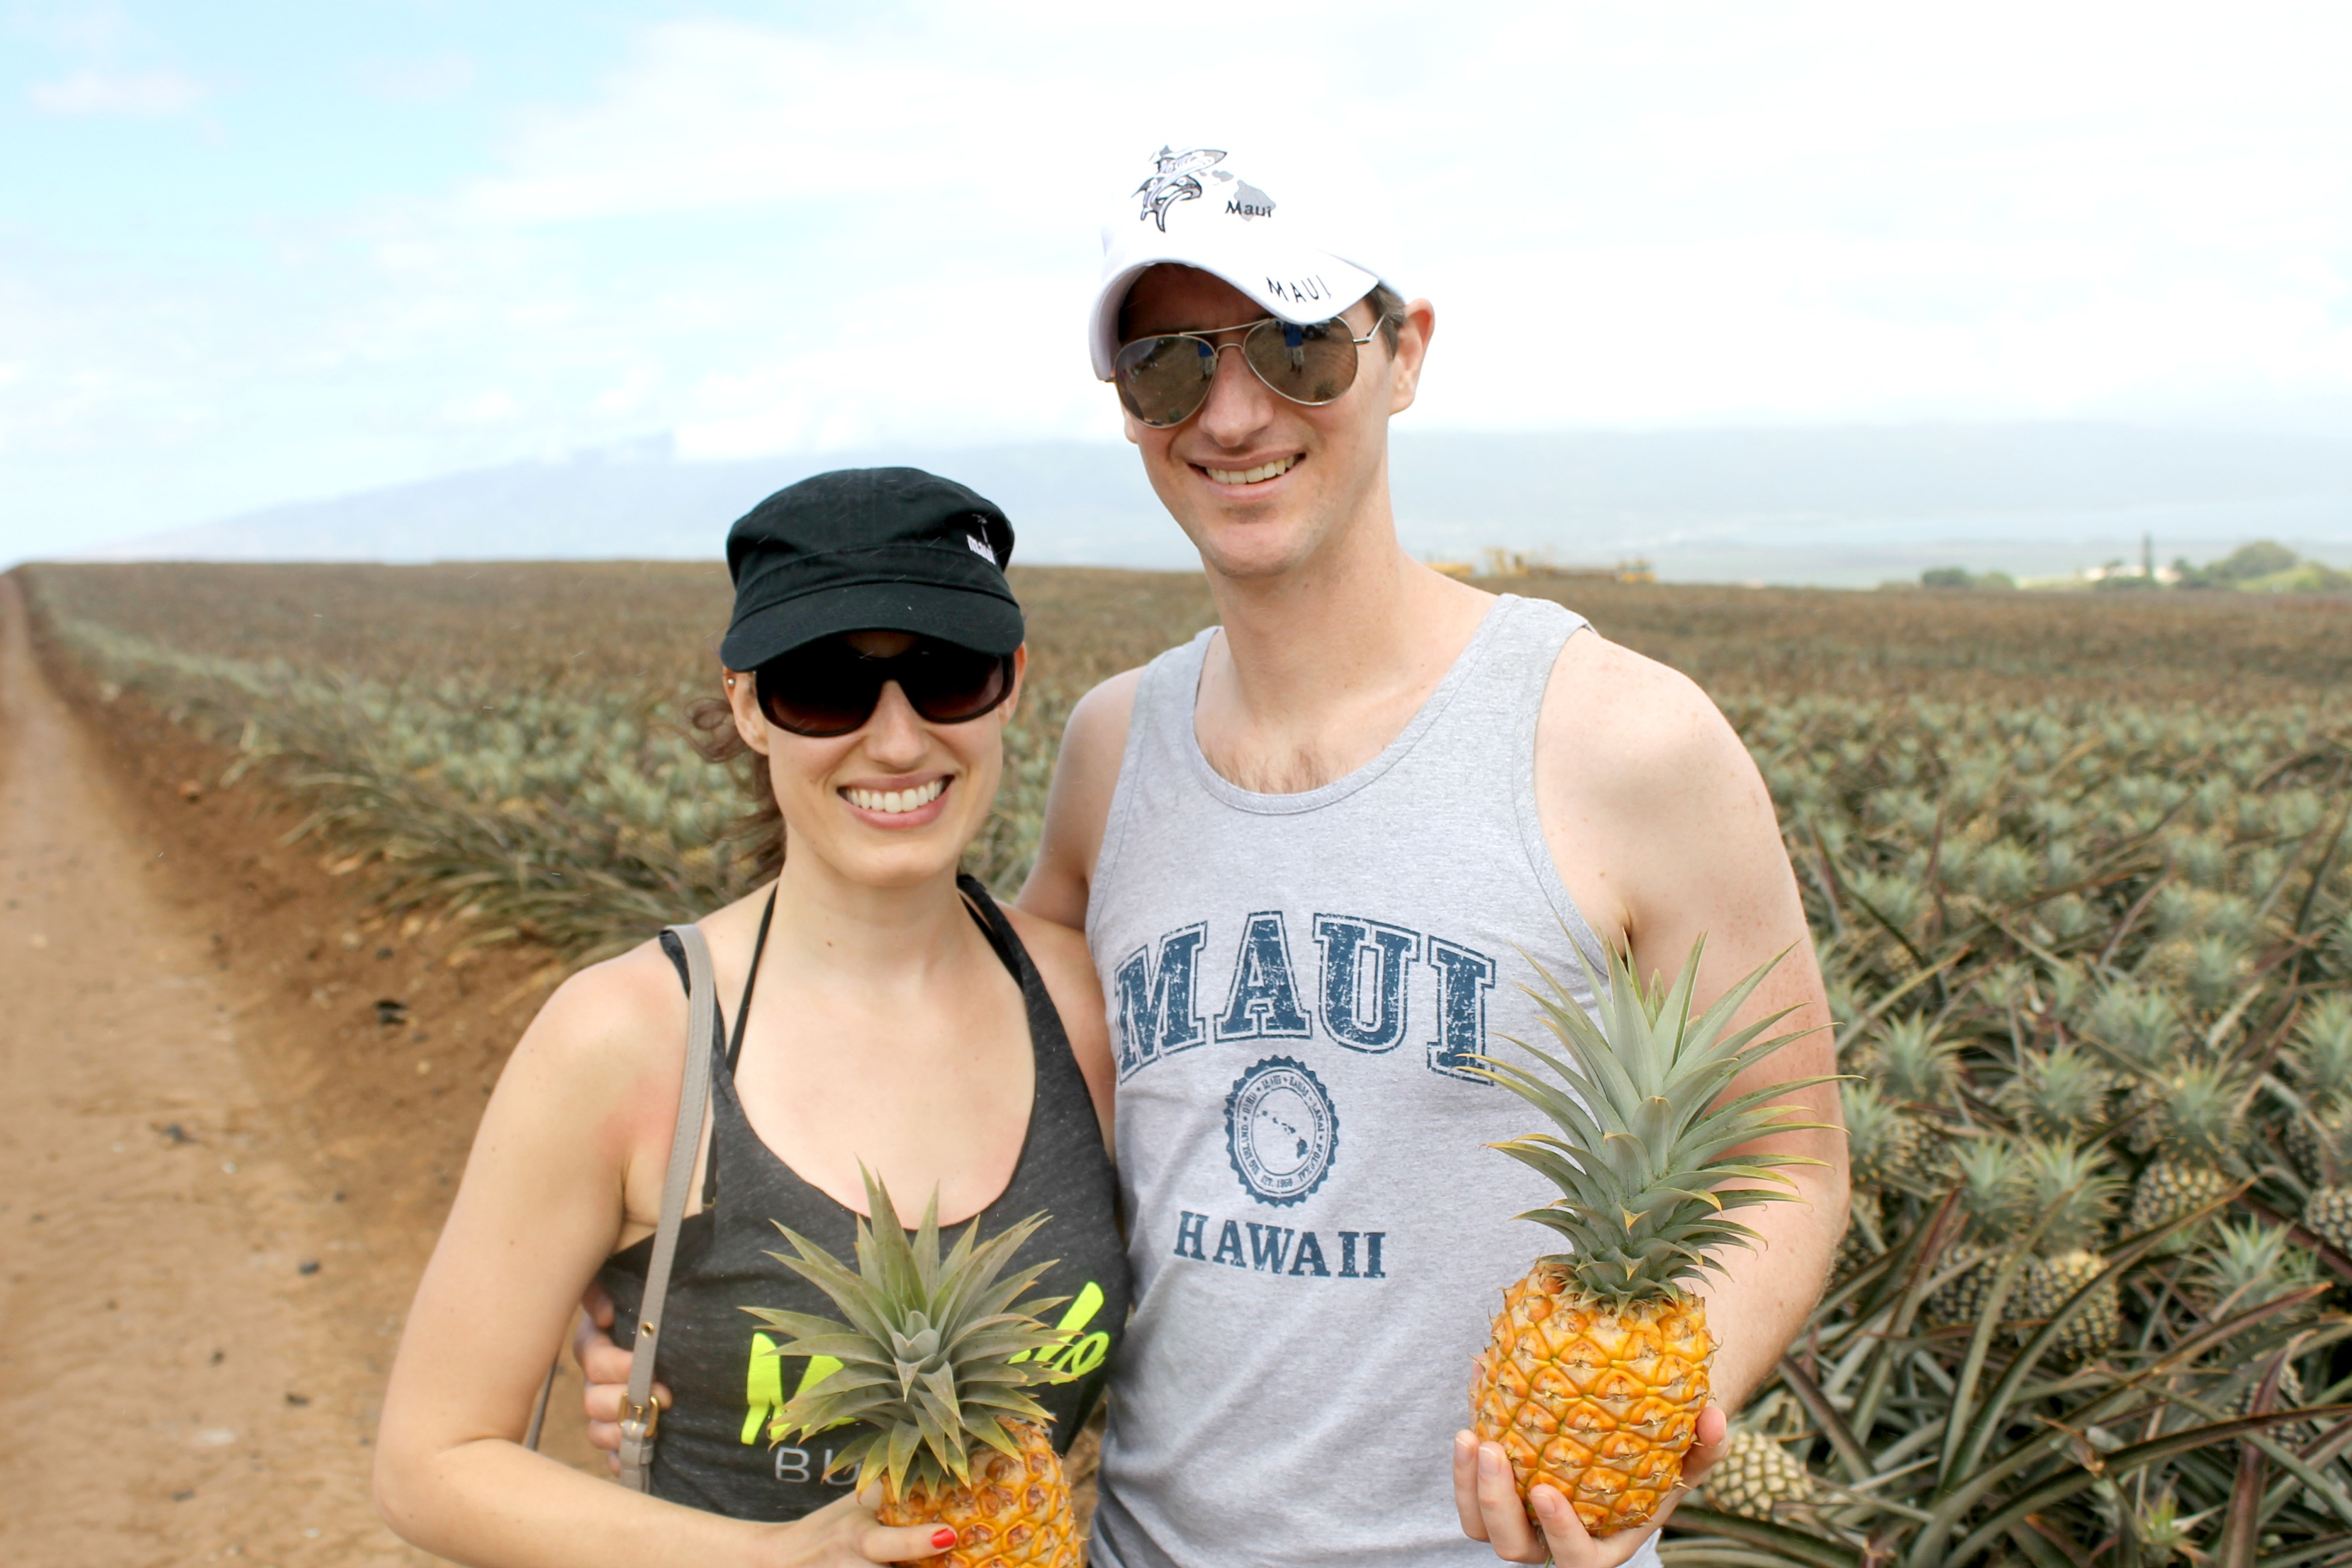 Maui Pineapple Tour Couple